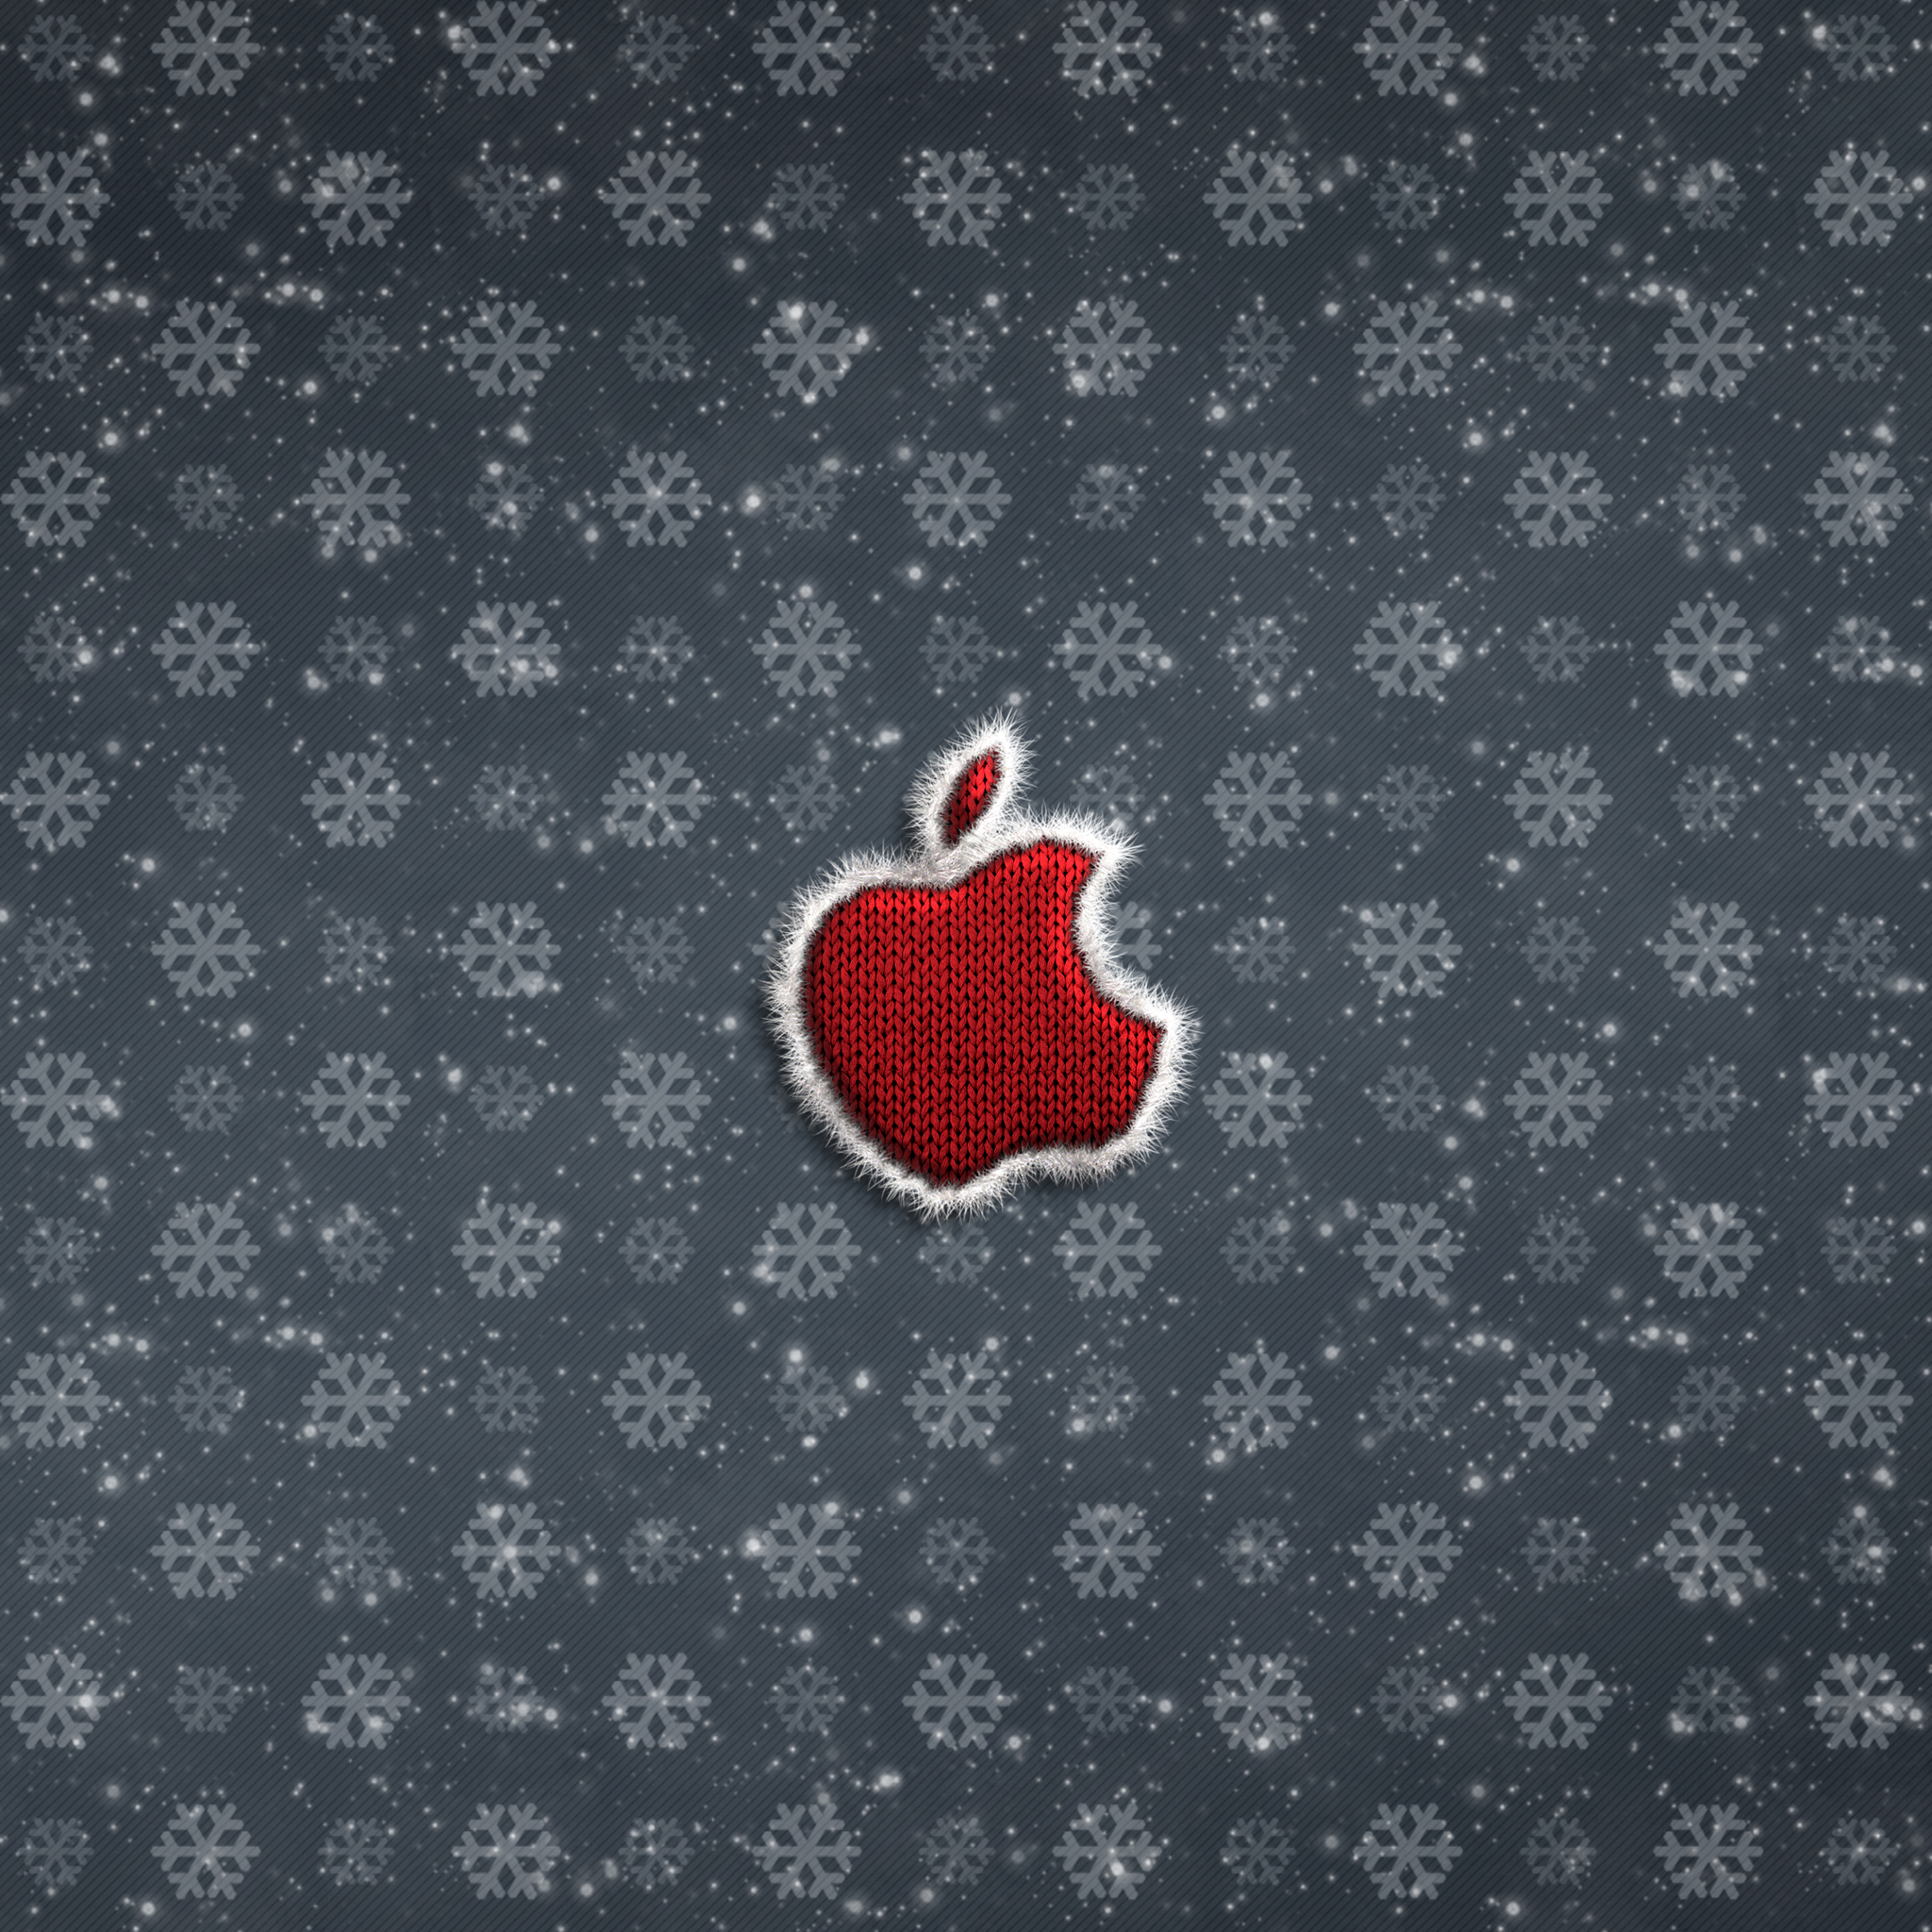 apple-logo-christmas-celebrations-4k-i7.jpg